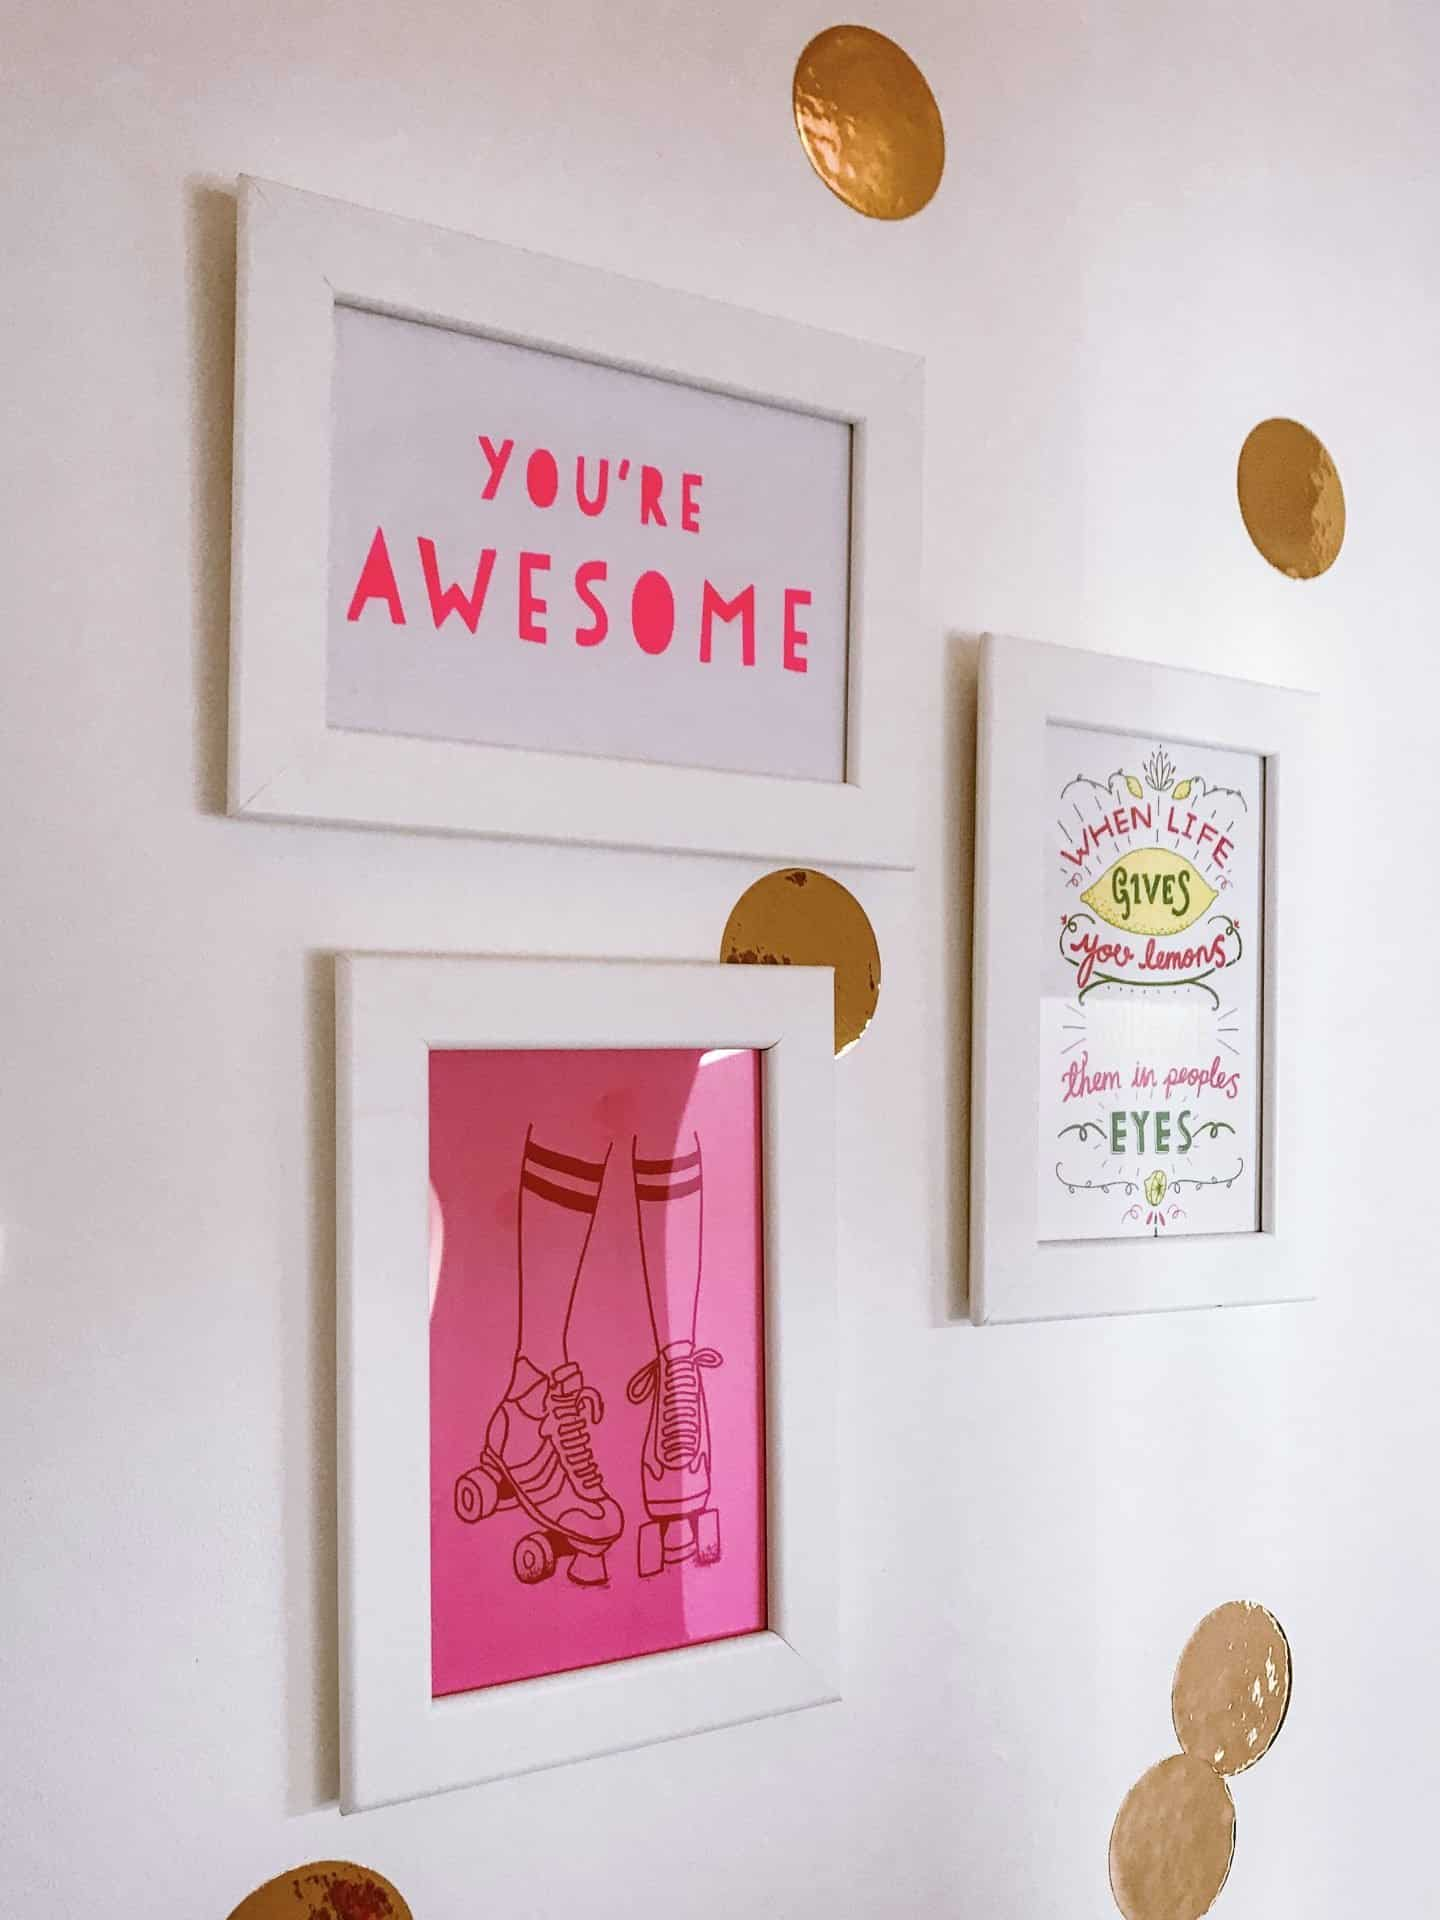 You're Awesome, Rollerskates and Lemon postcards in white frames